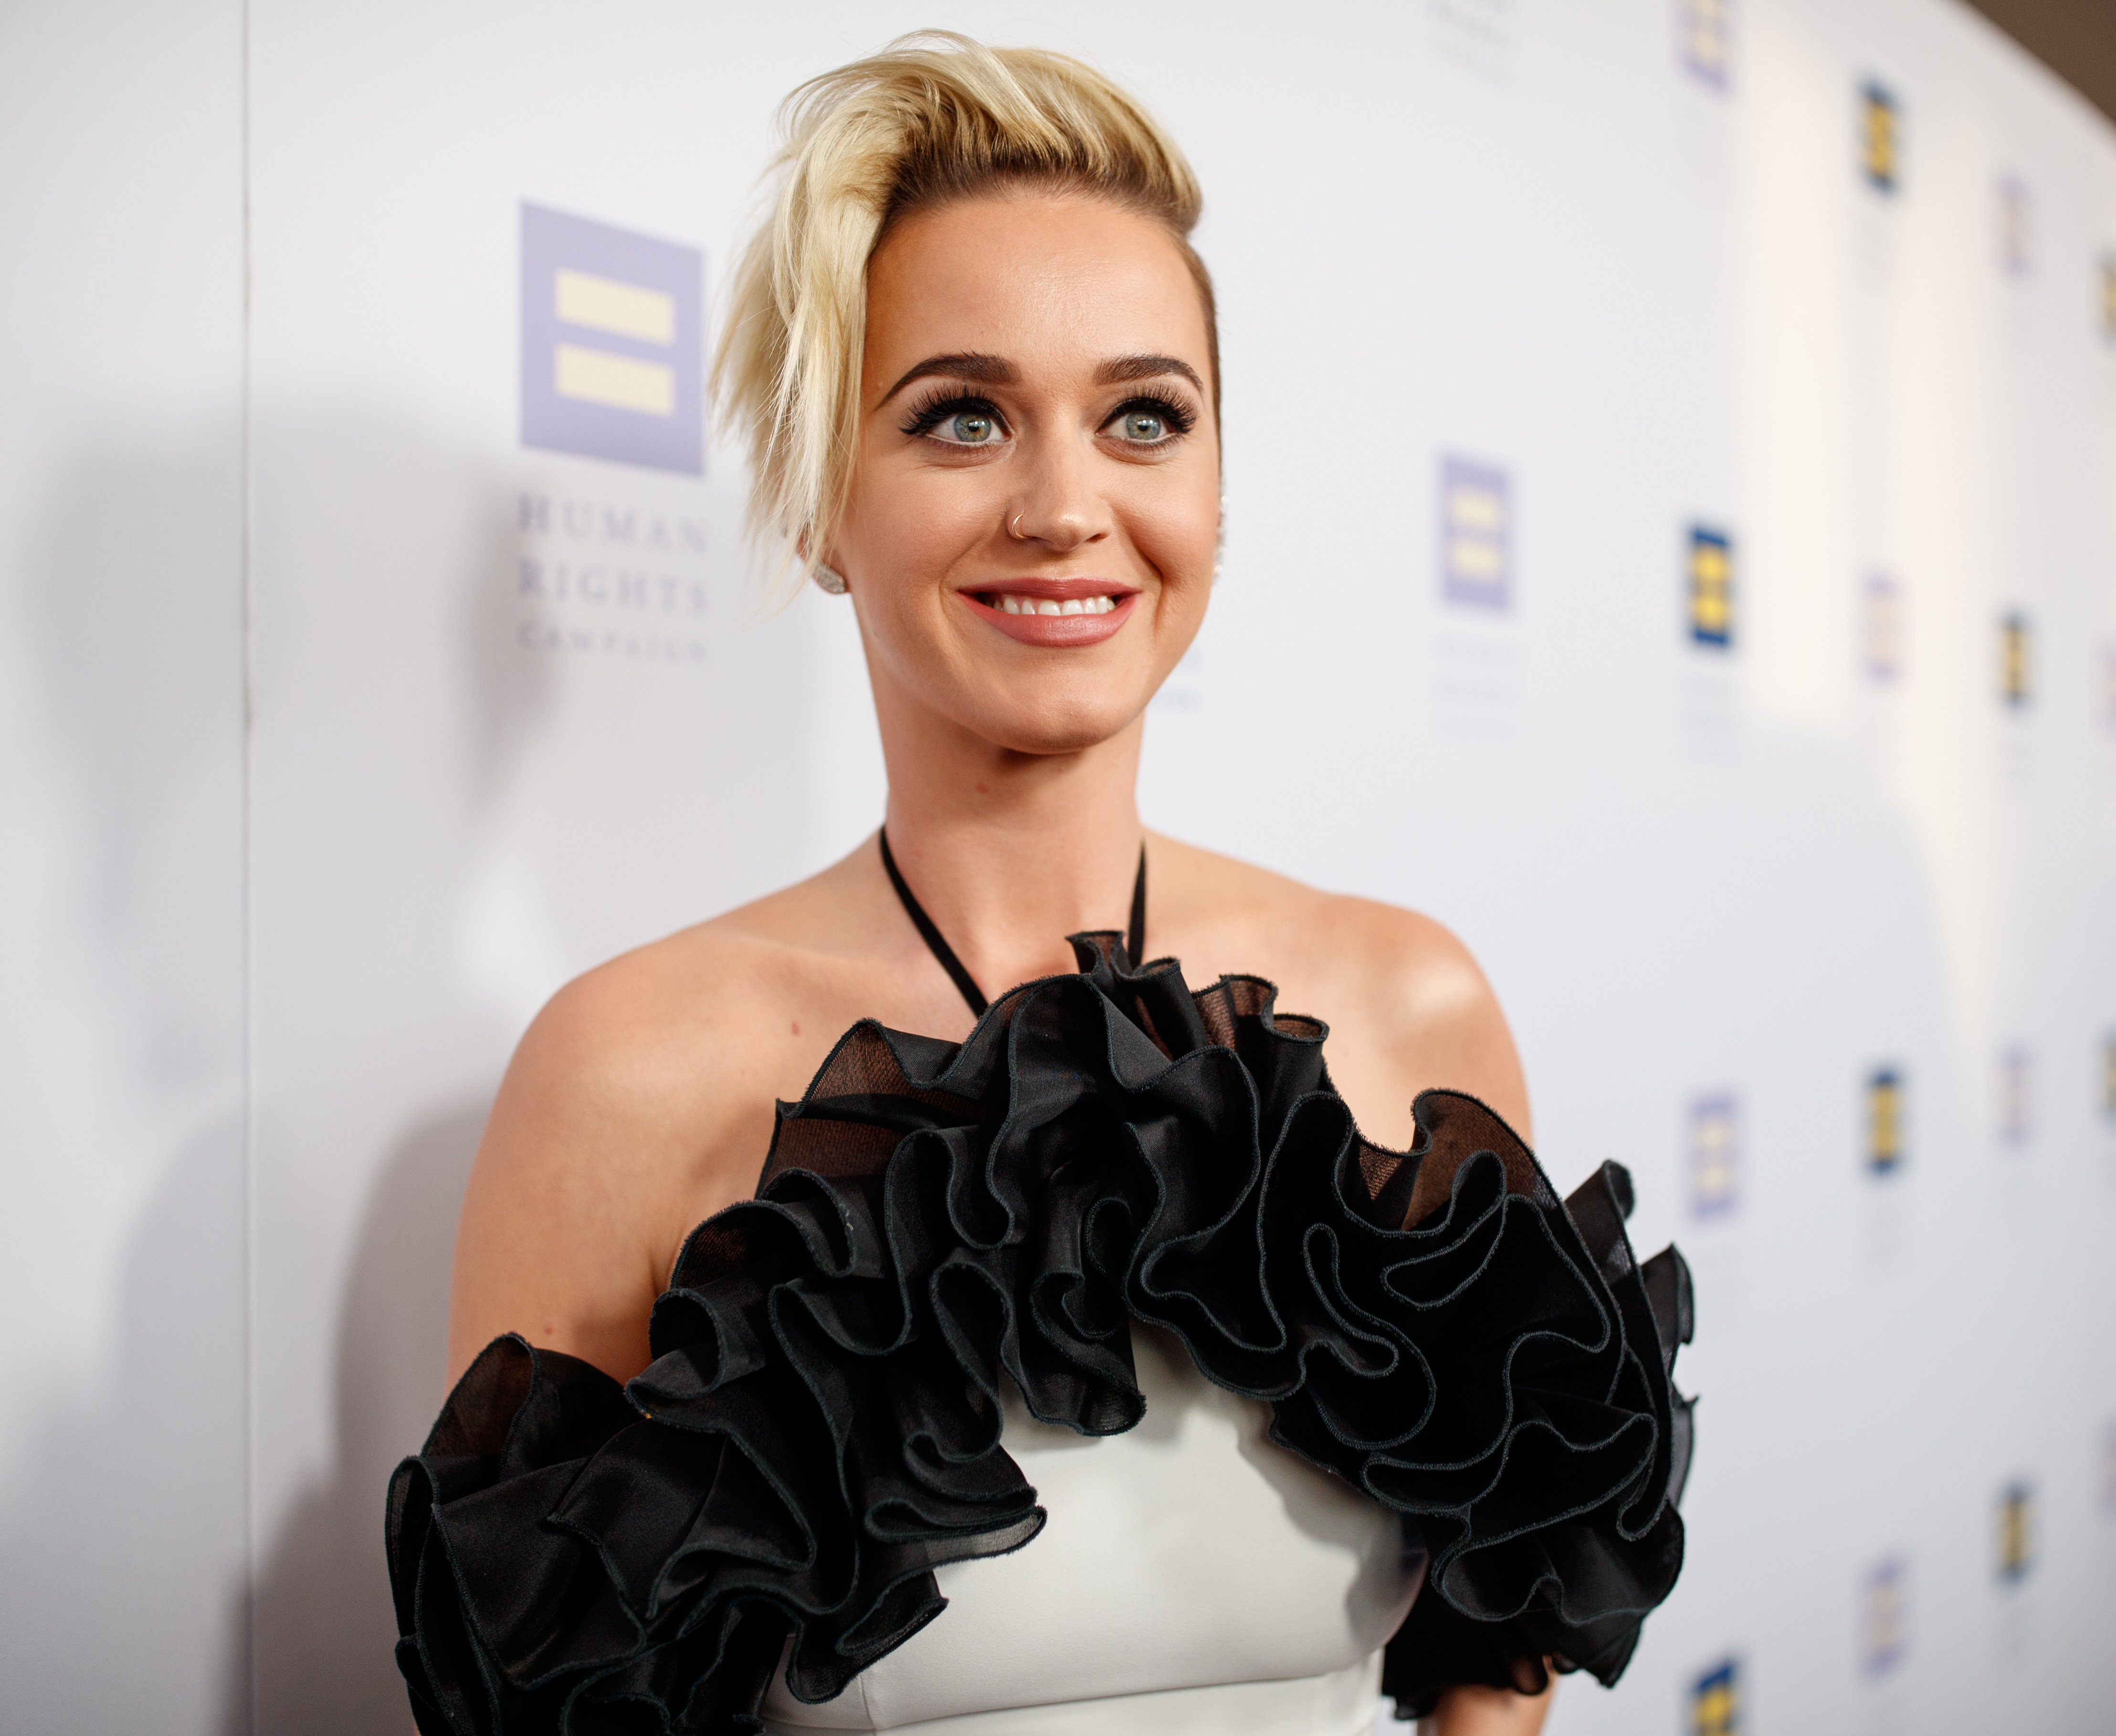 Image Source: Getty Images/Katy at a red carpet event